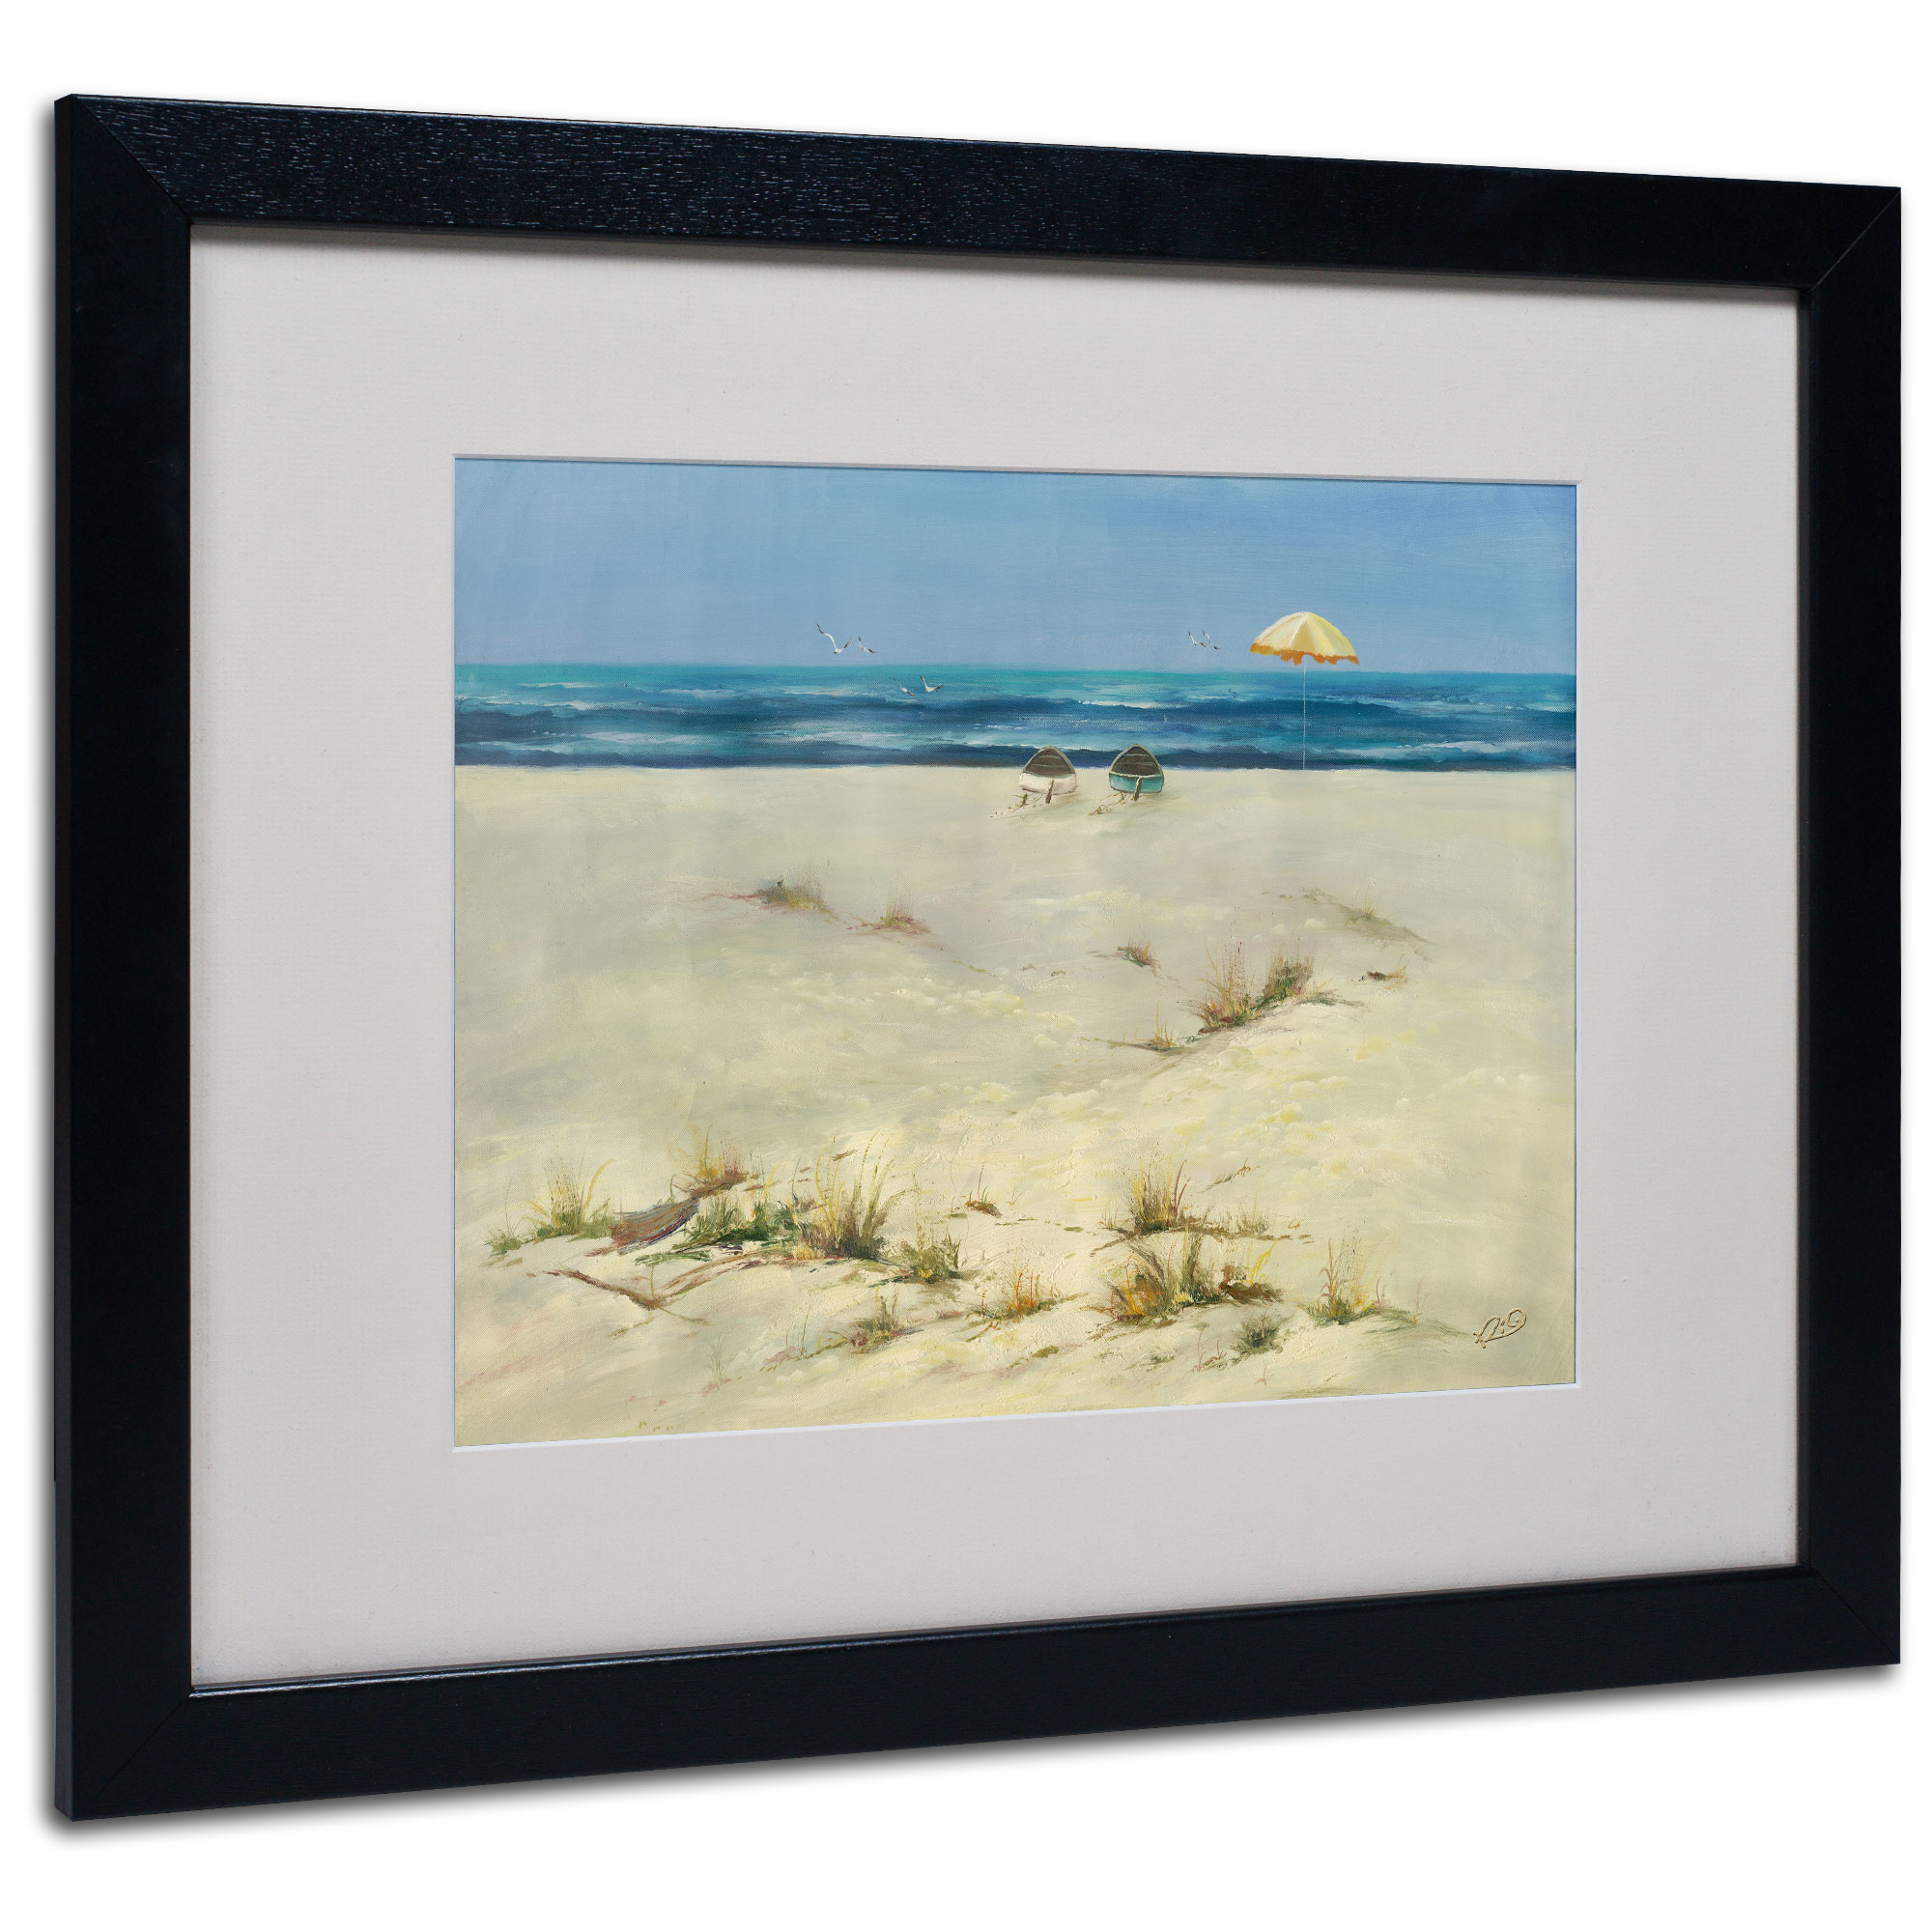 Rio 'Two Small Boats' Black Wooden Framed Art 18 x 22 Inches